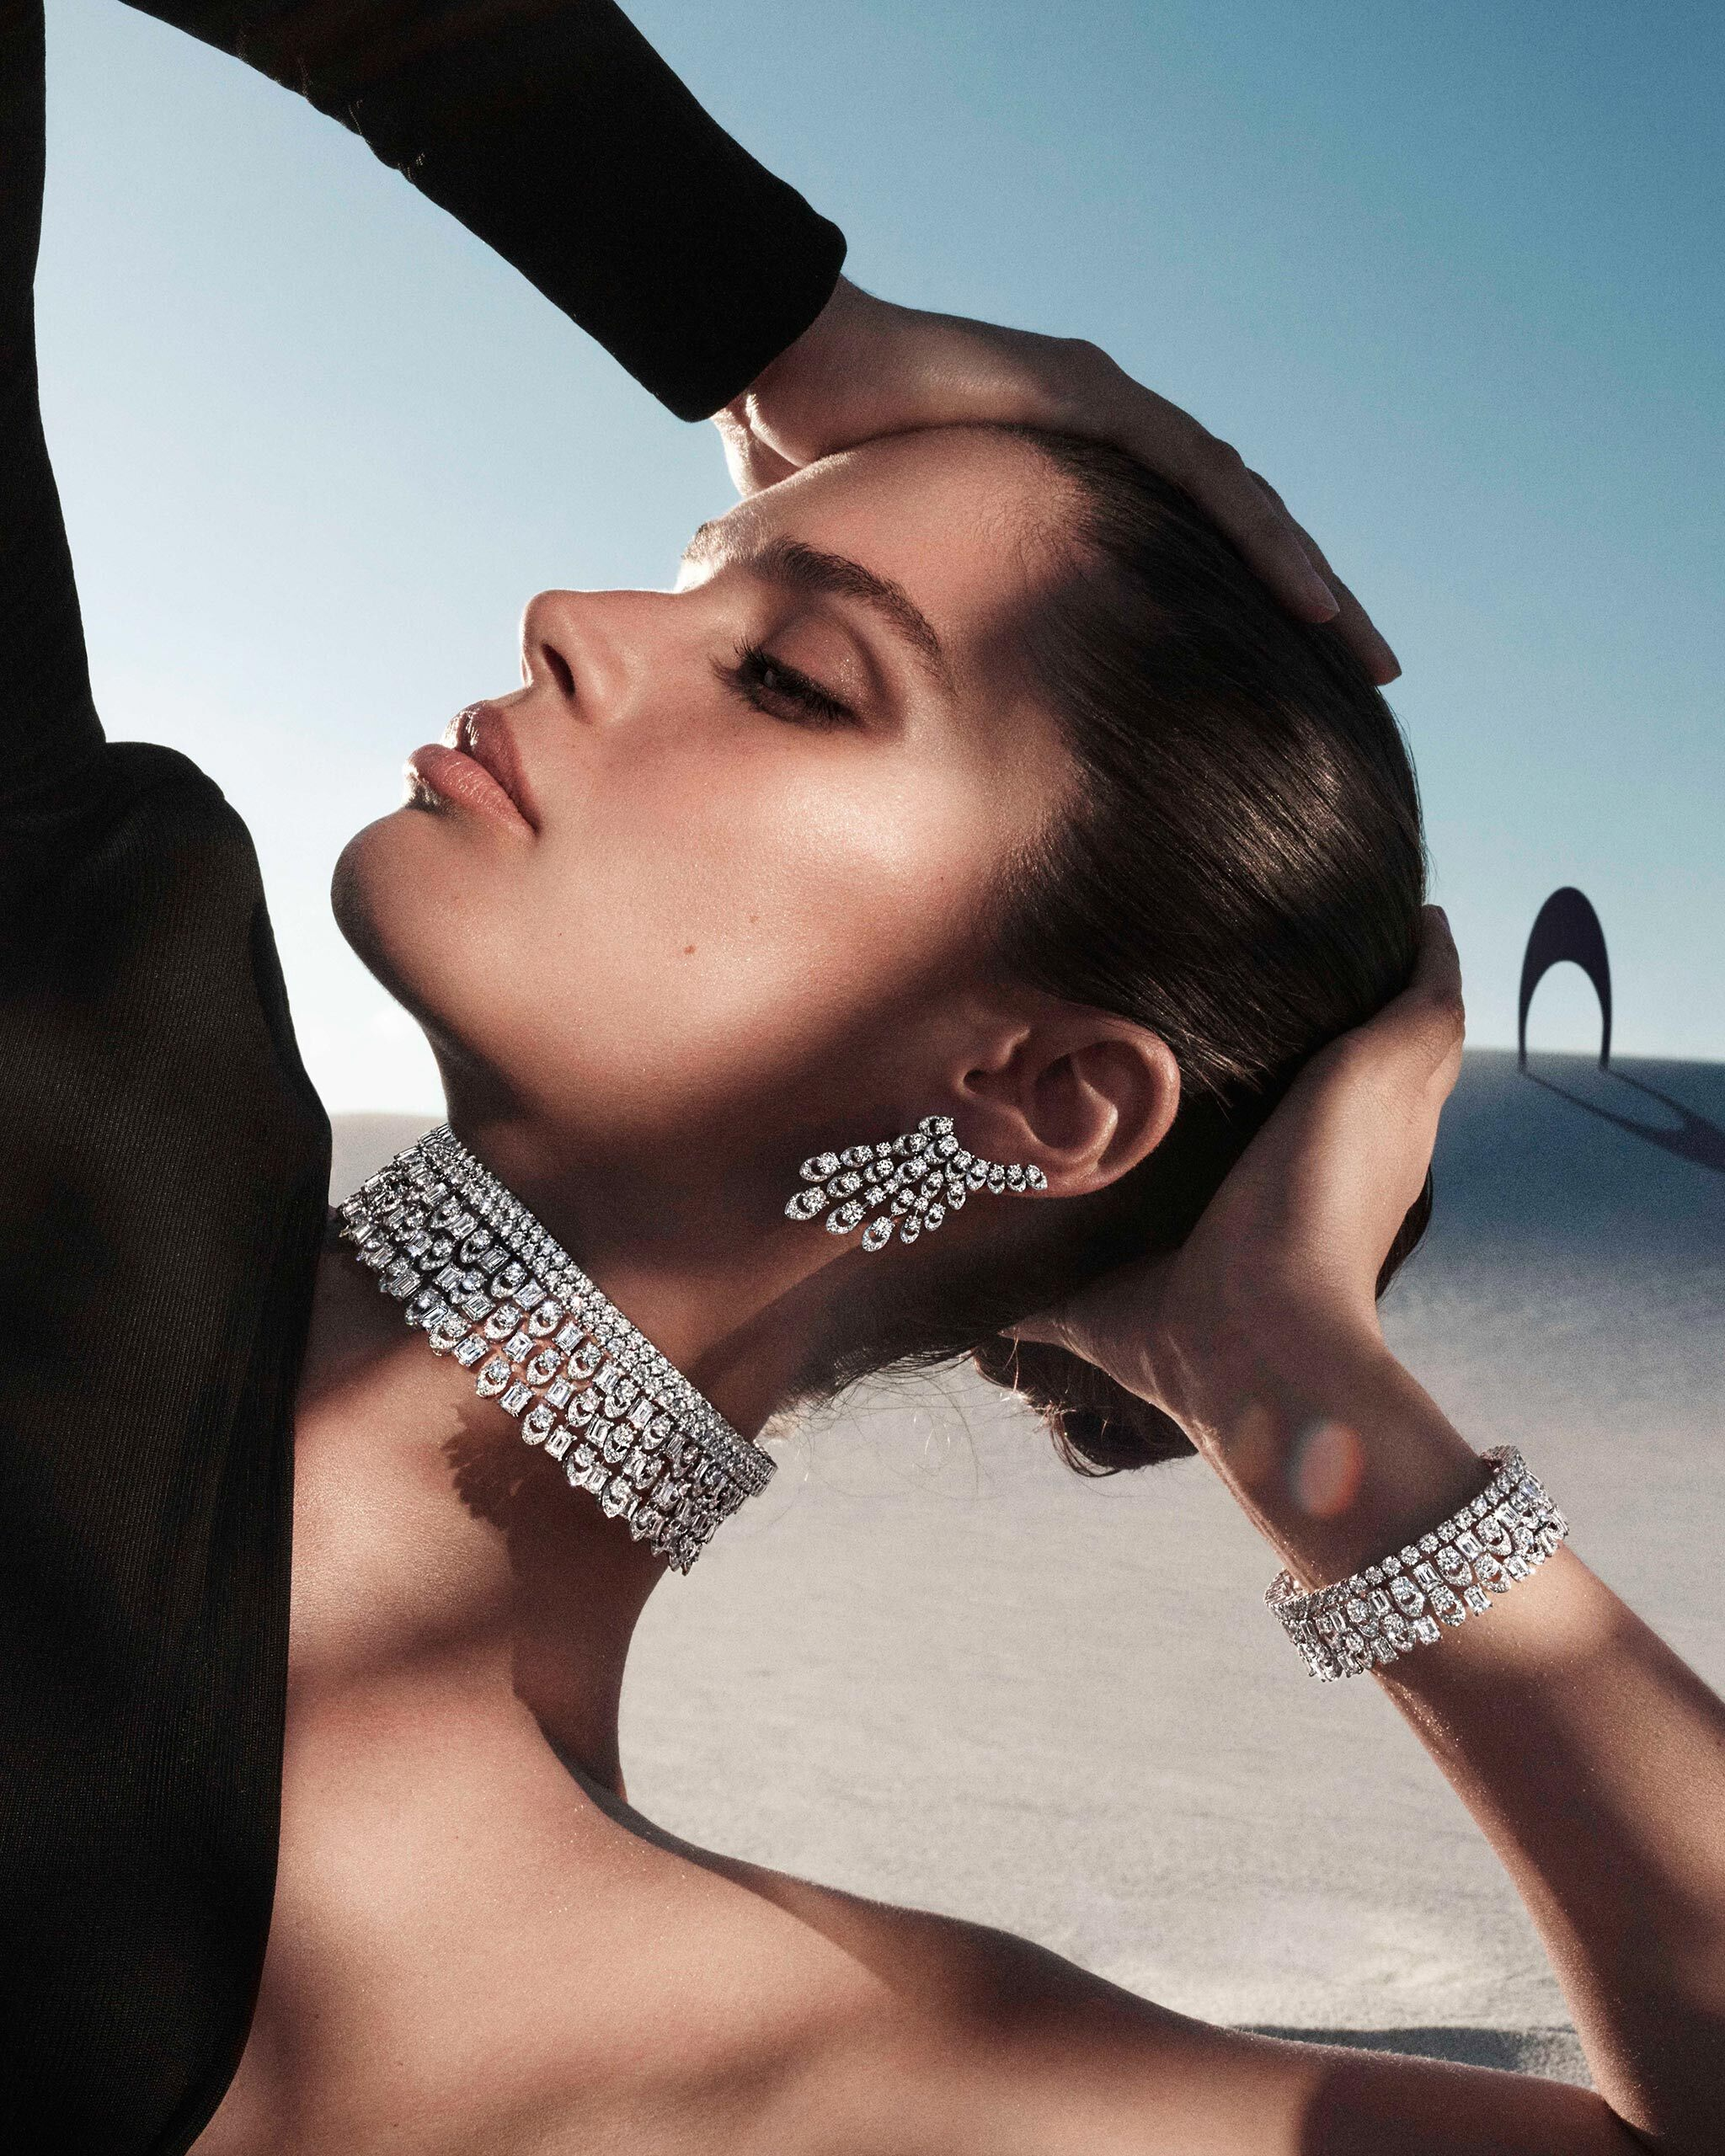 Model wears Graff Gateway diamond jewels from the Tribal collection, in a desert